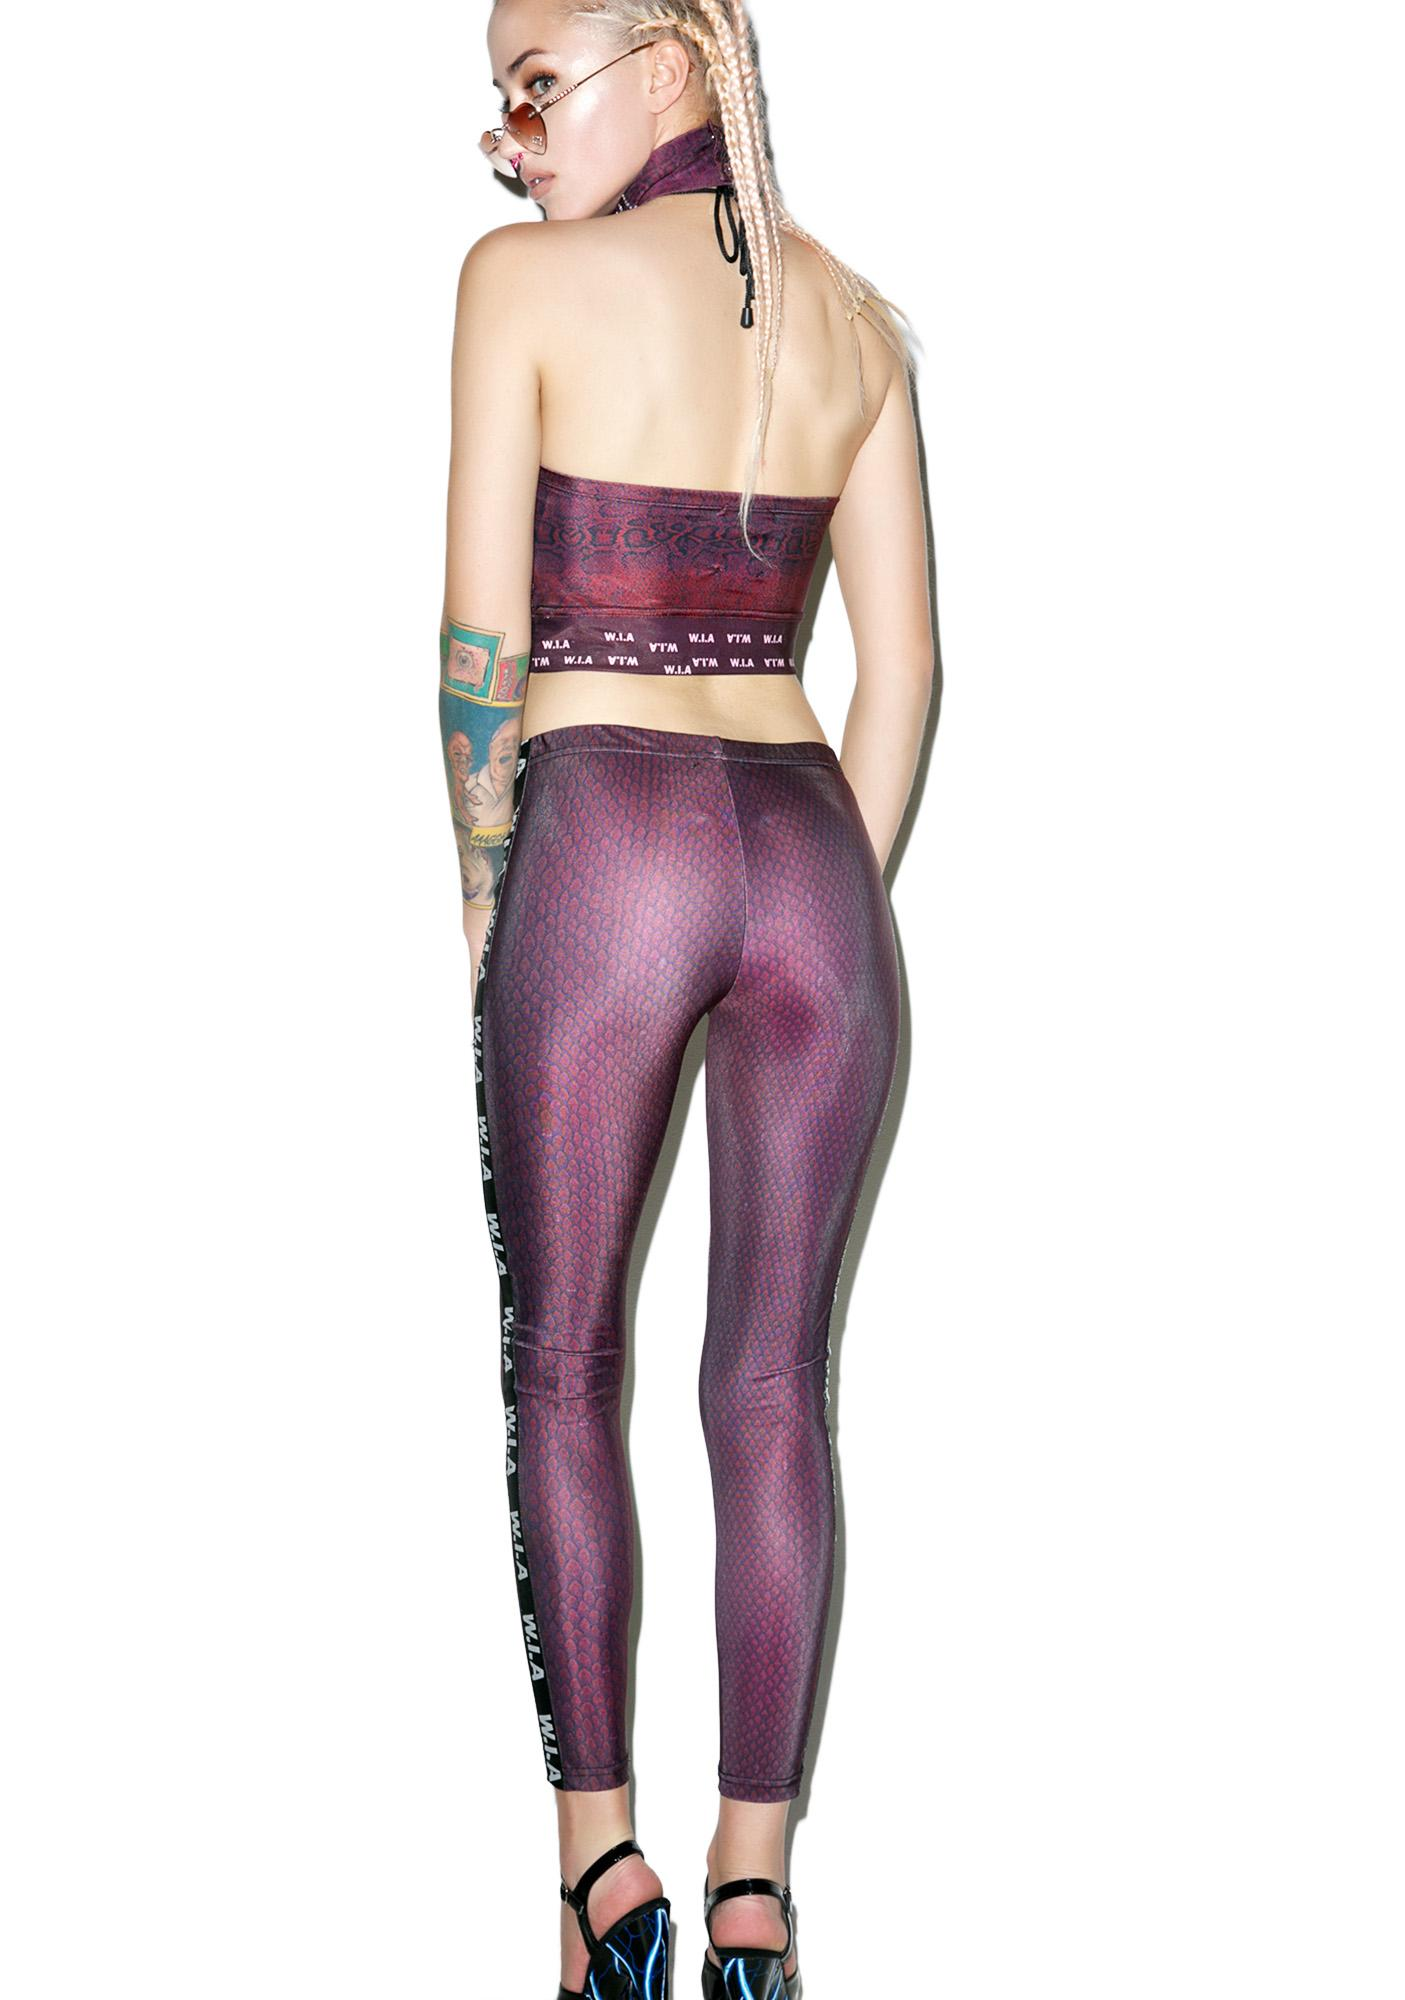 W.I.A Snaky Leggings